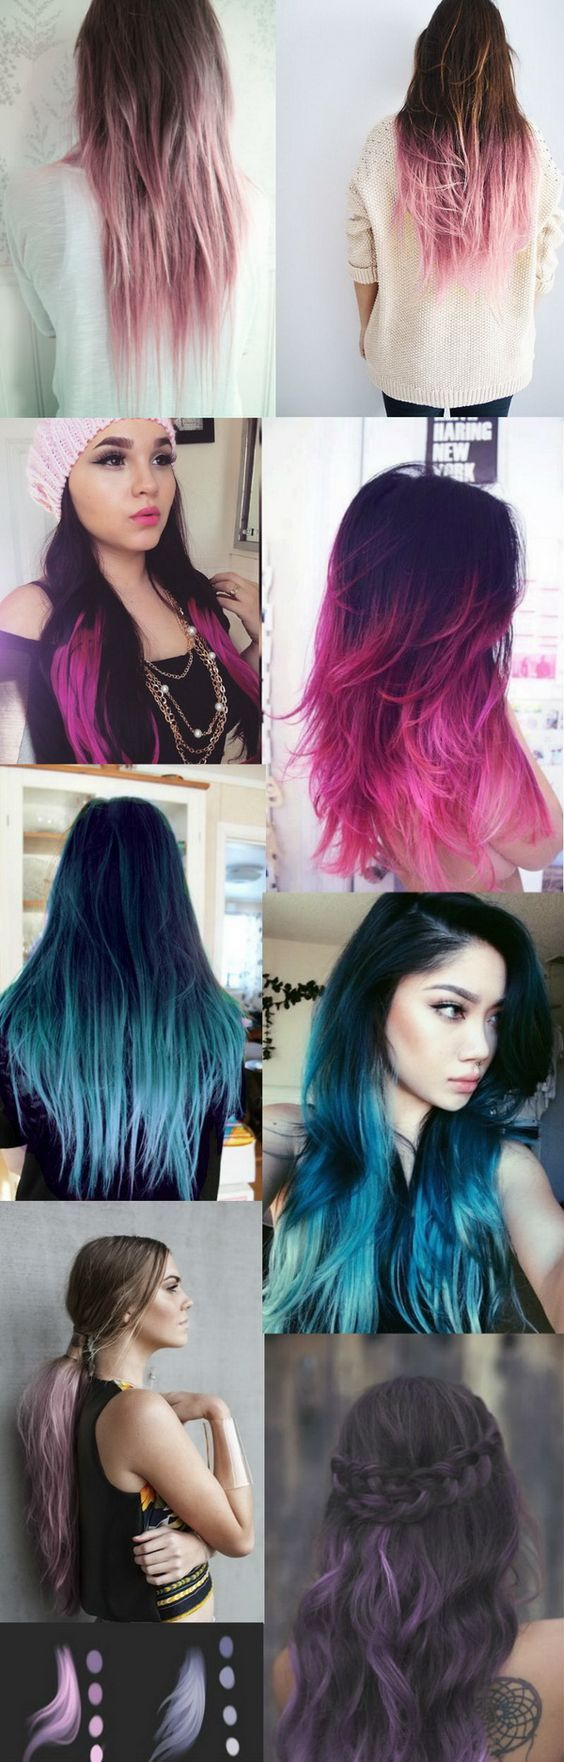 stunning pastel hair color ideas styleclothes pinterest